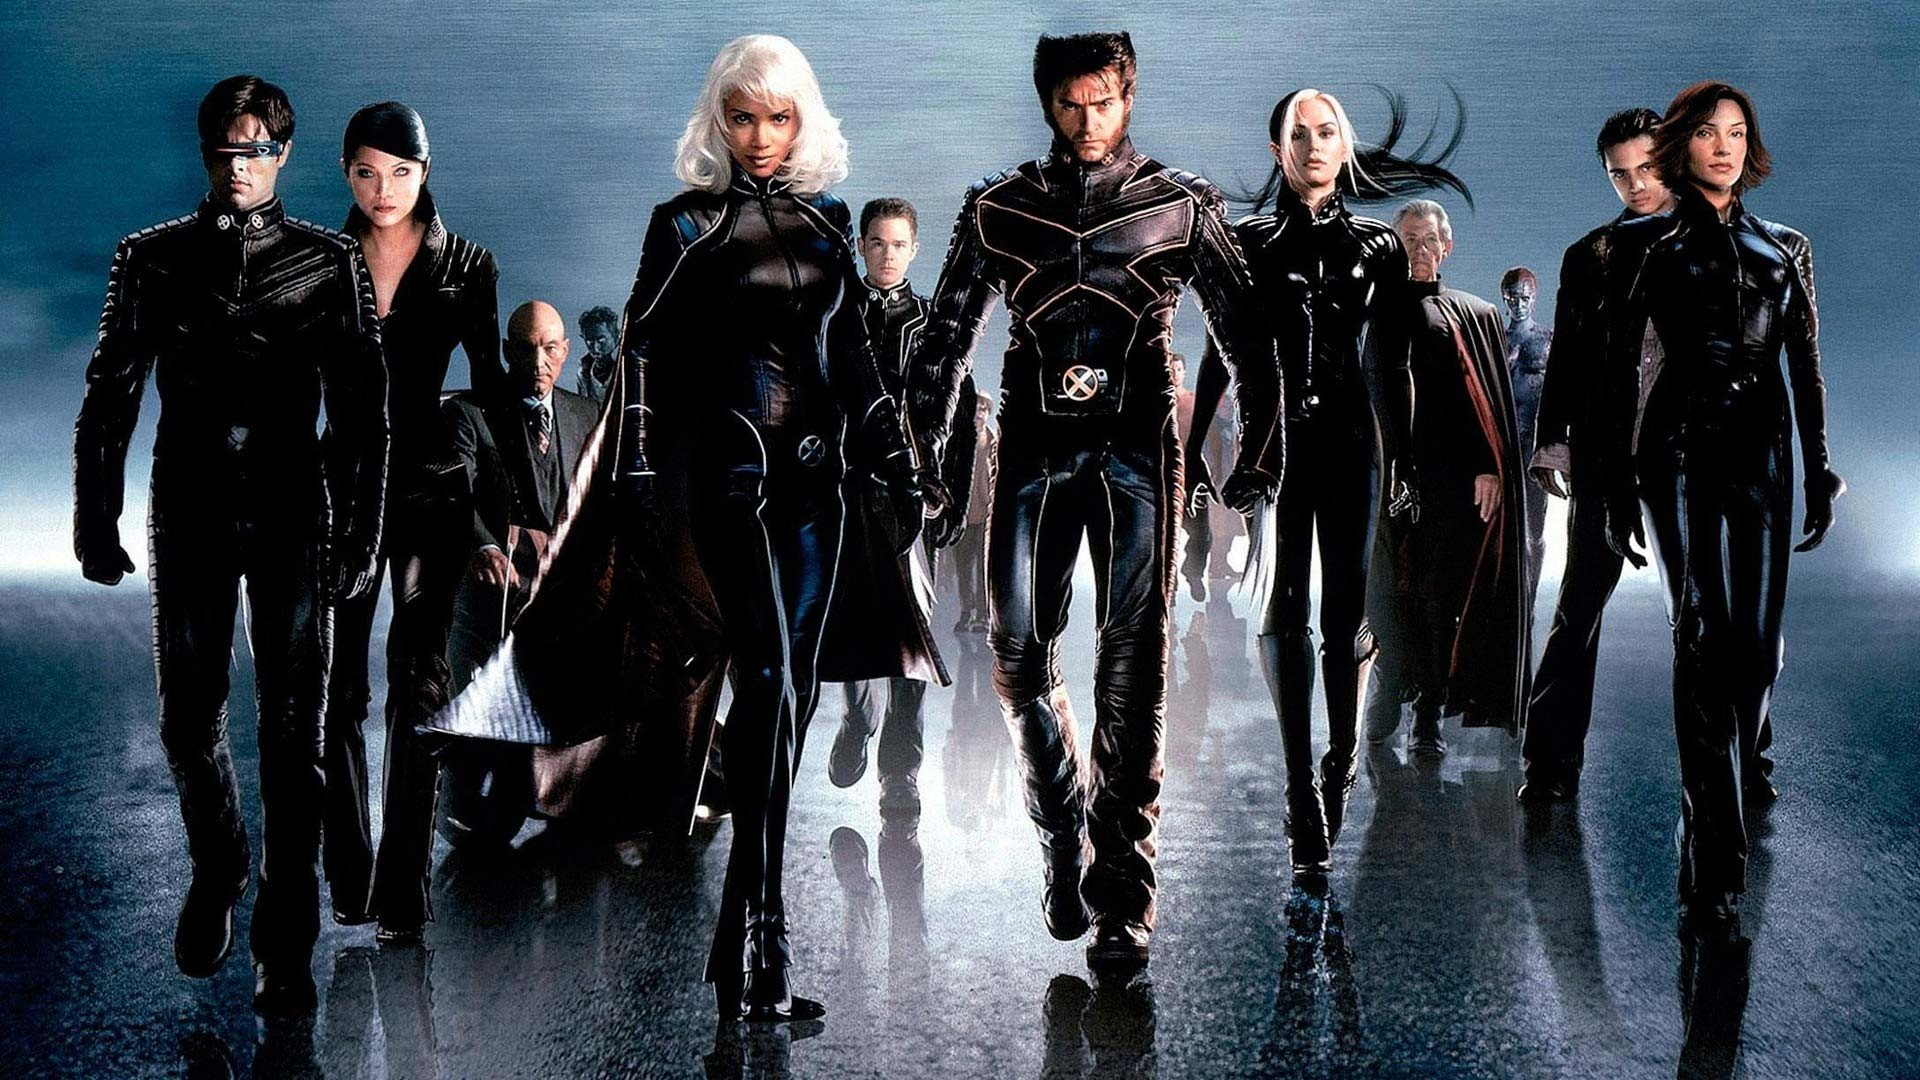 download X Men Wallpaper HD 68 images [1920x1080] for your 1920x1080